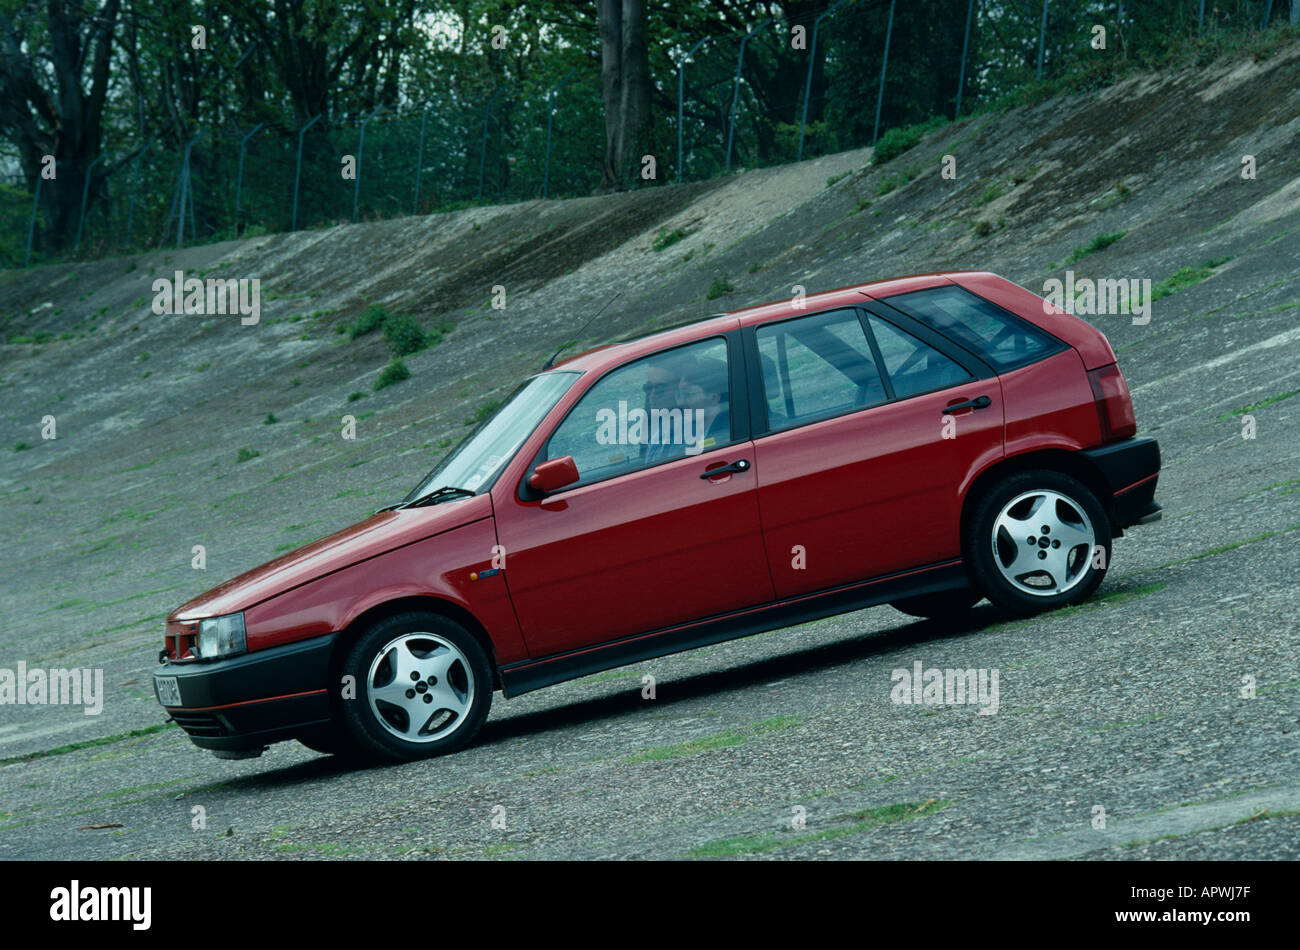 fiat tipo 2 litre ie 16v of 1993 introduced 1992 tipo 1988 to stock photo 5181054 alamy. Black Bedroom Furniture Sets. Home Design Ideas